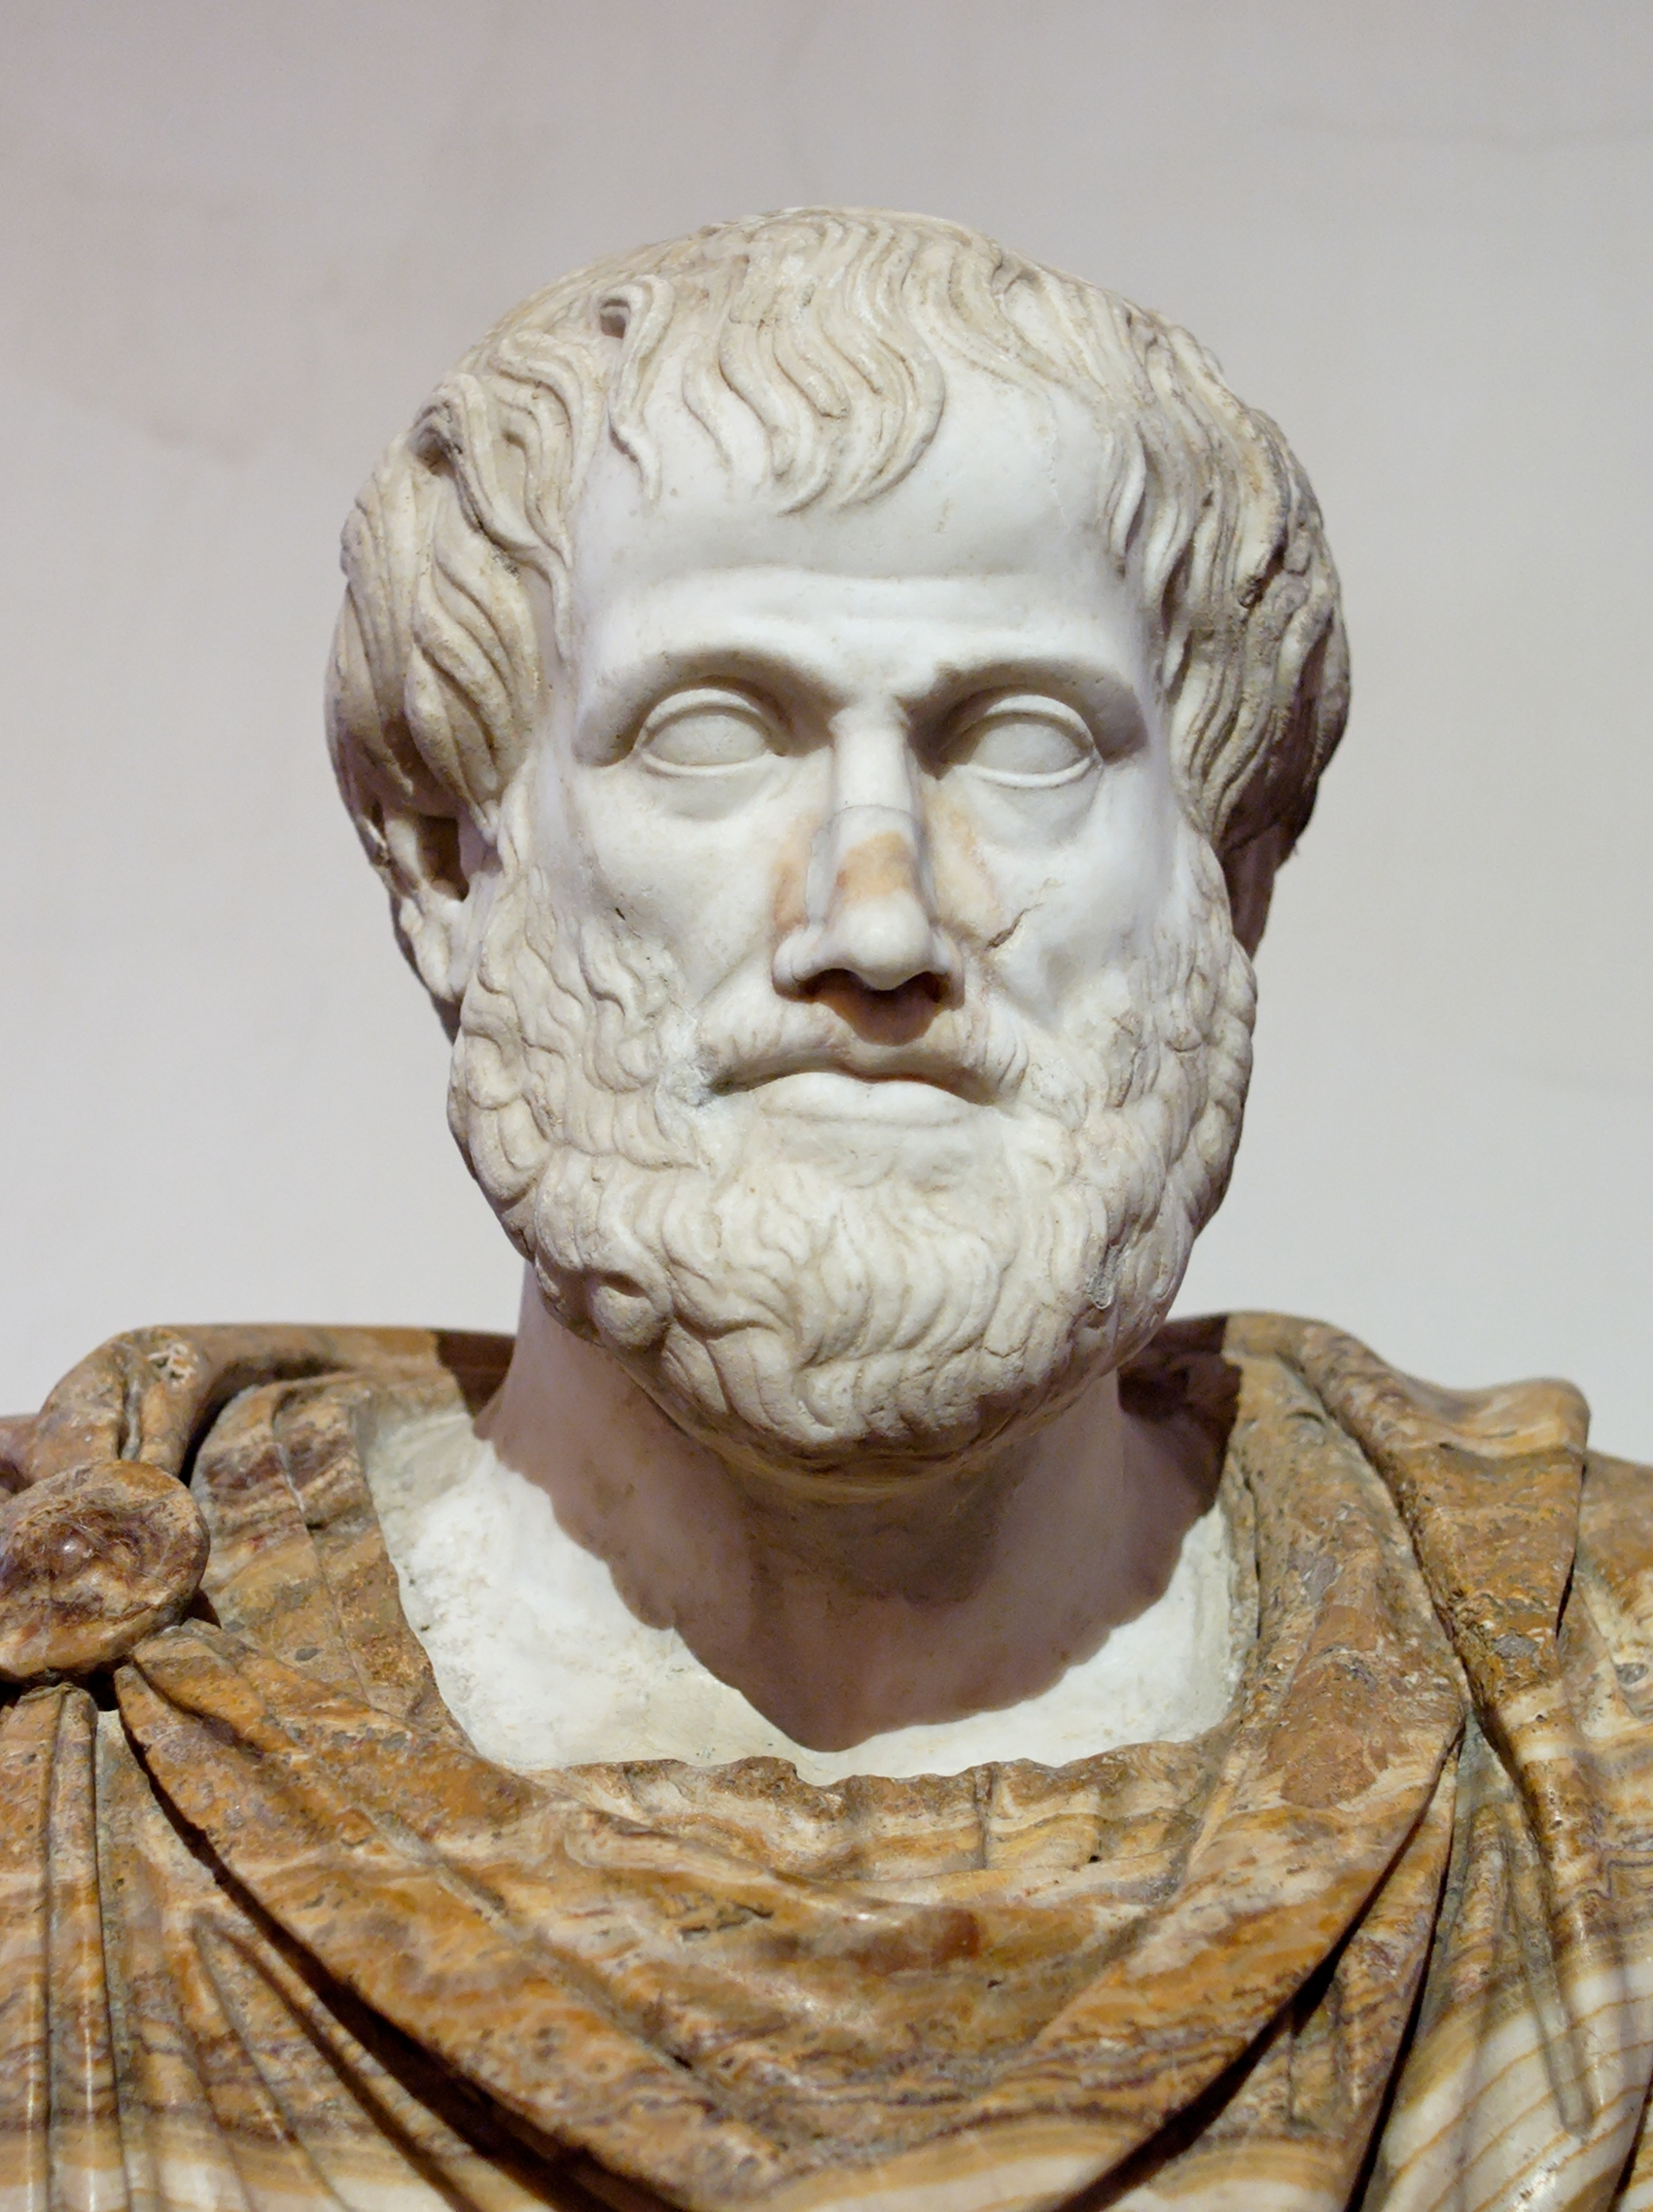 Image of the bust of Aristotle